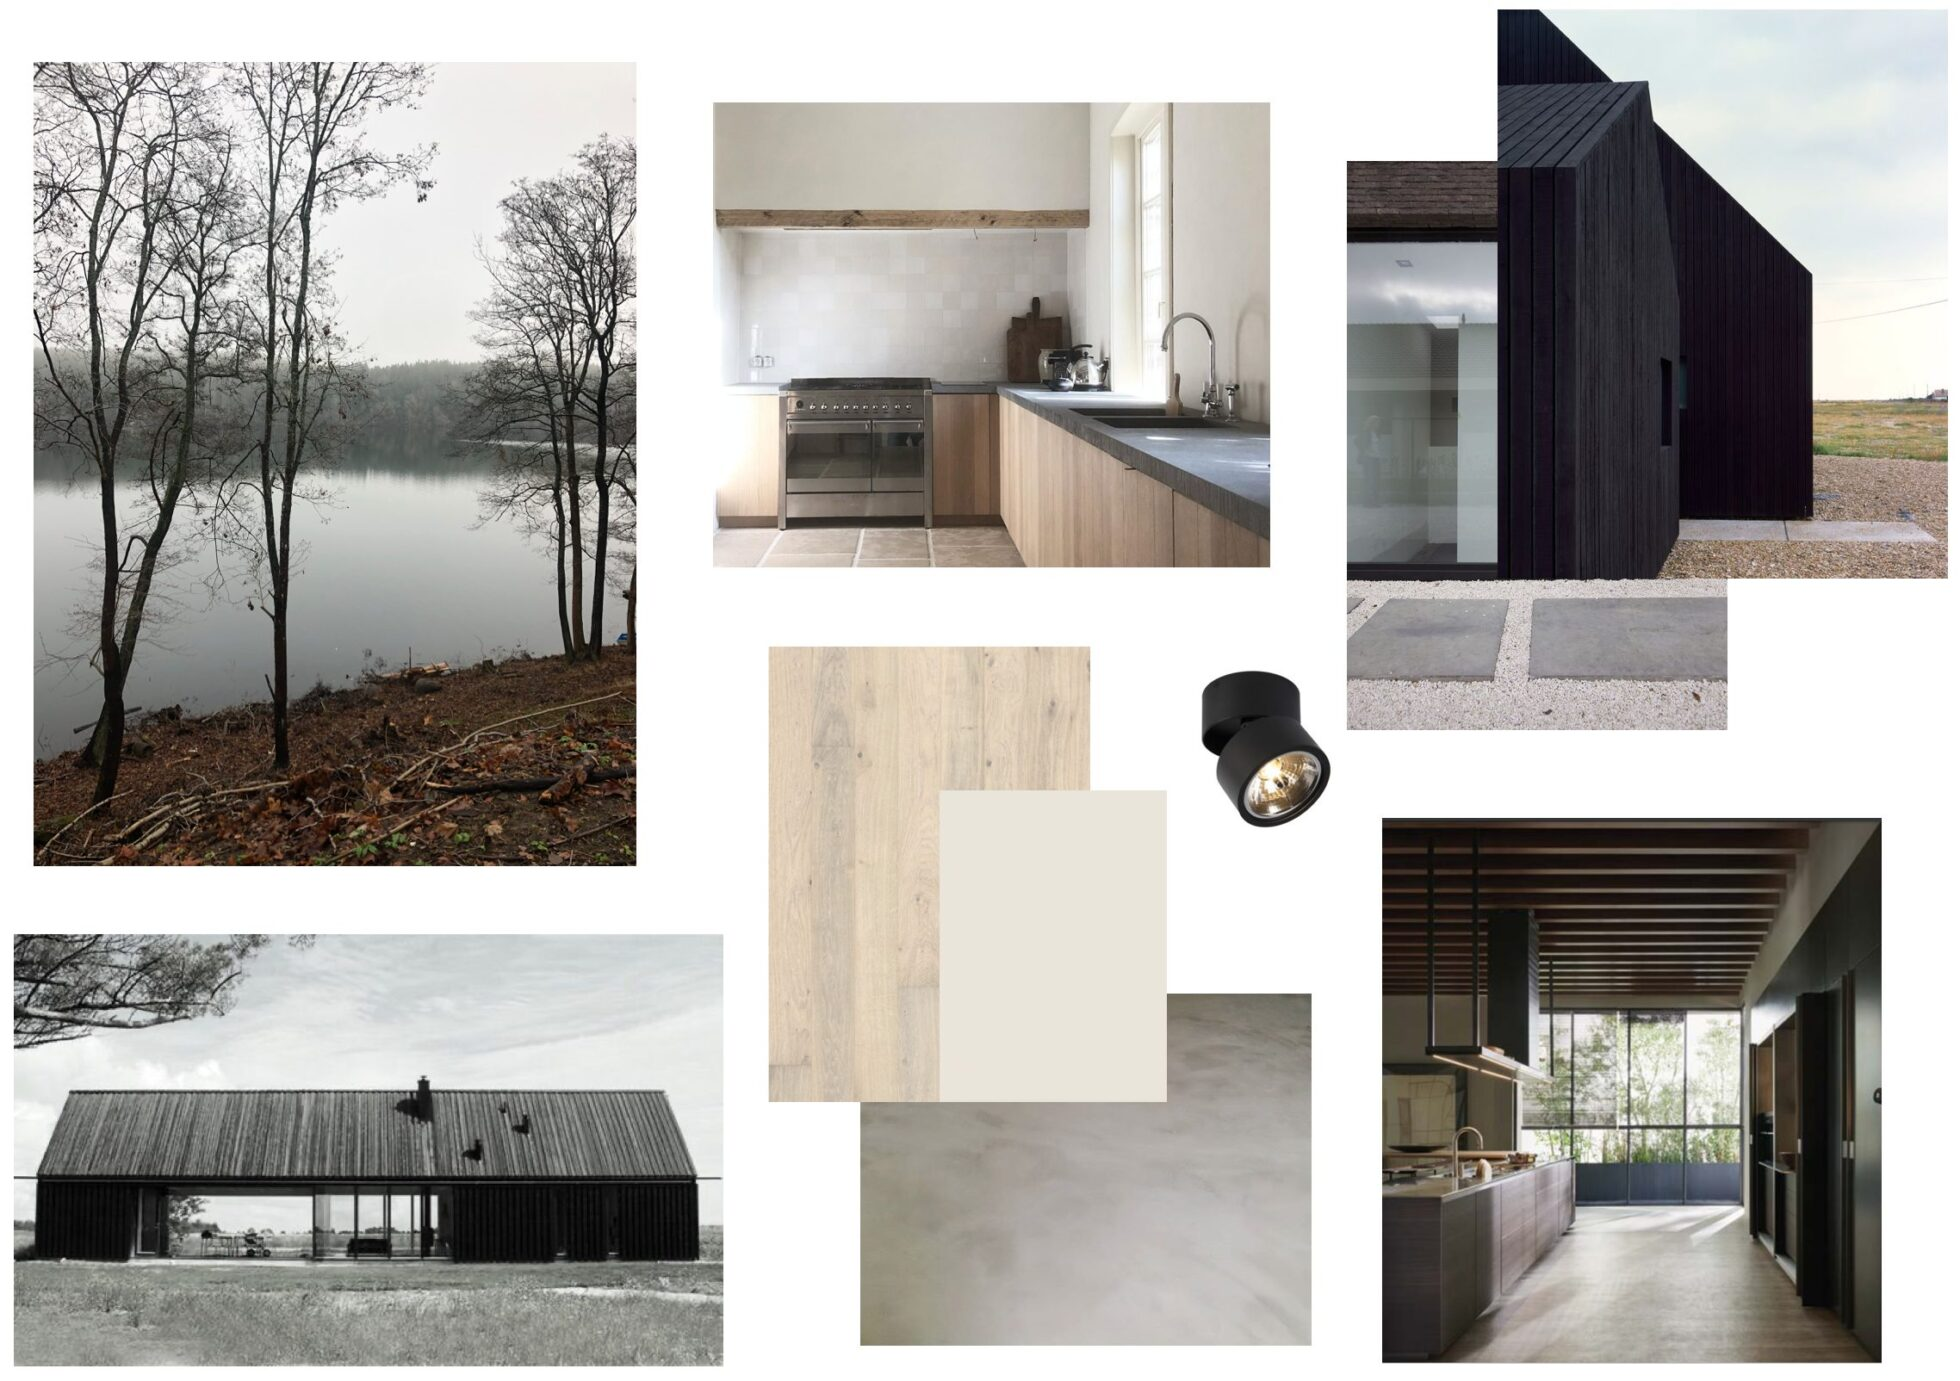 Current project inspiration